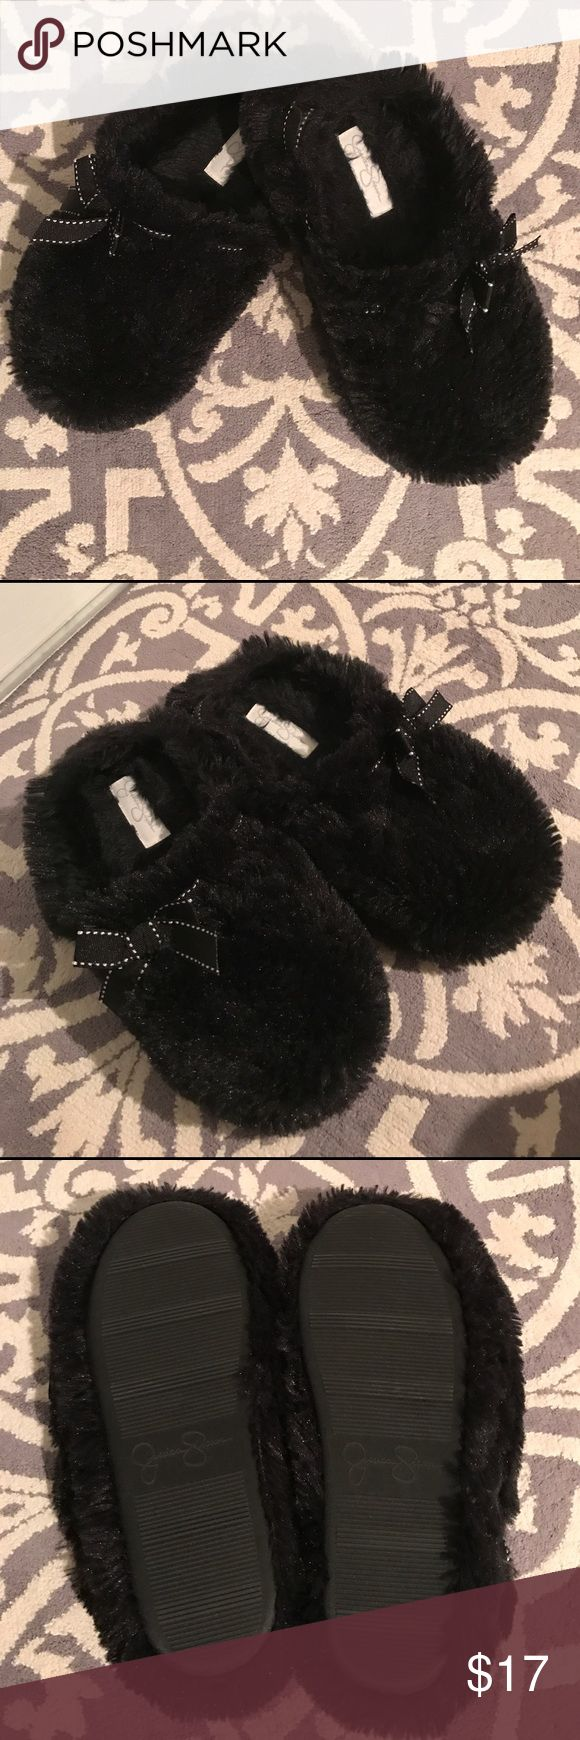 Jessica Simpson✨Fuzzy Slippers So soft and comfy black slippers. Soles show no wear. Jessica Simpson Shoes Slippers